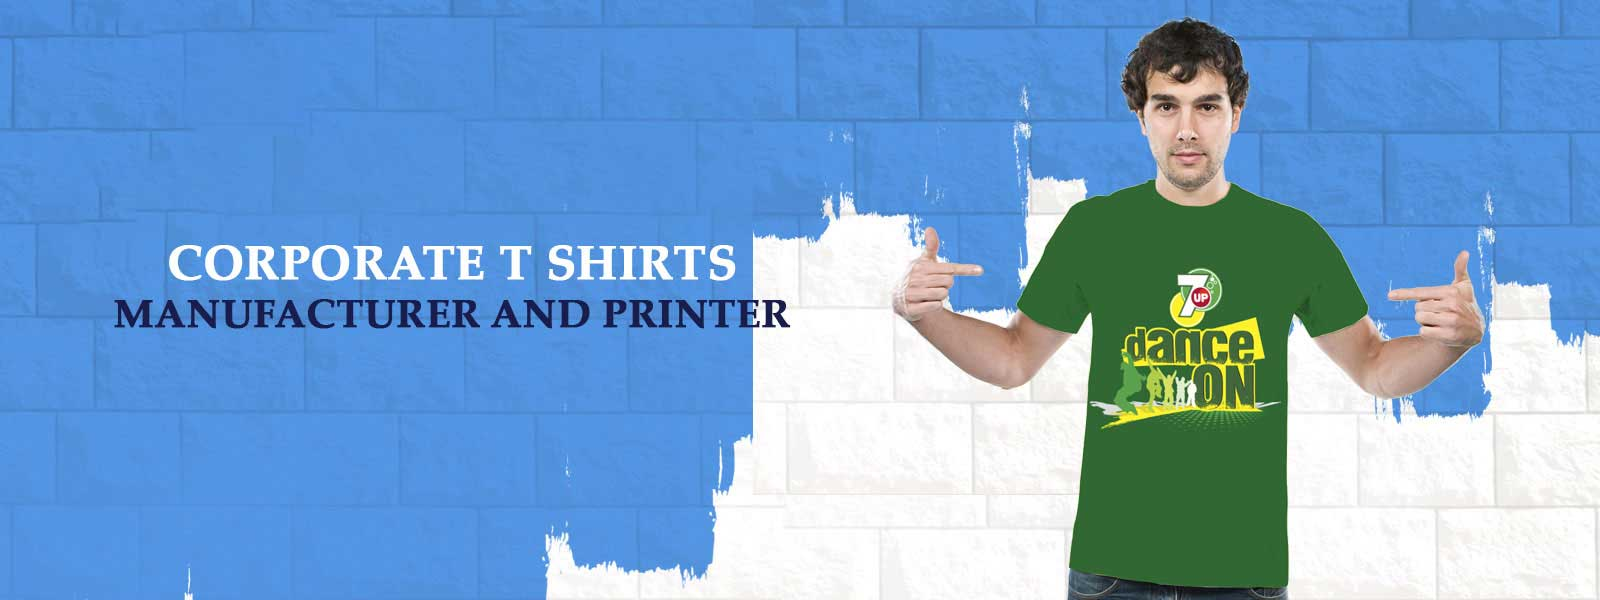 Corporate t shirts manufacturer & printer